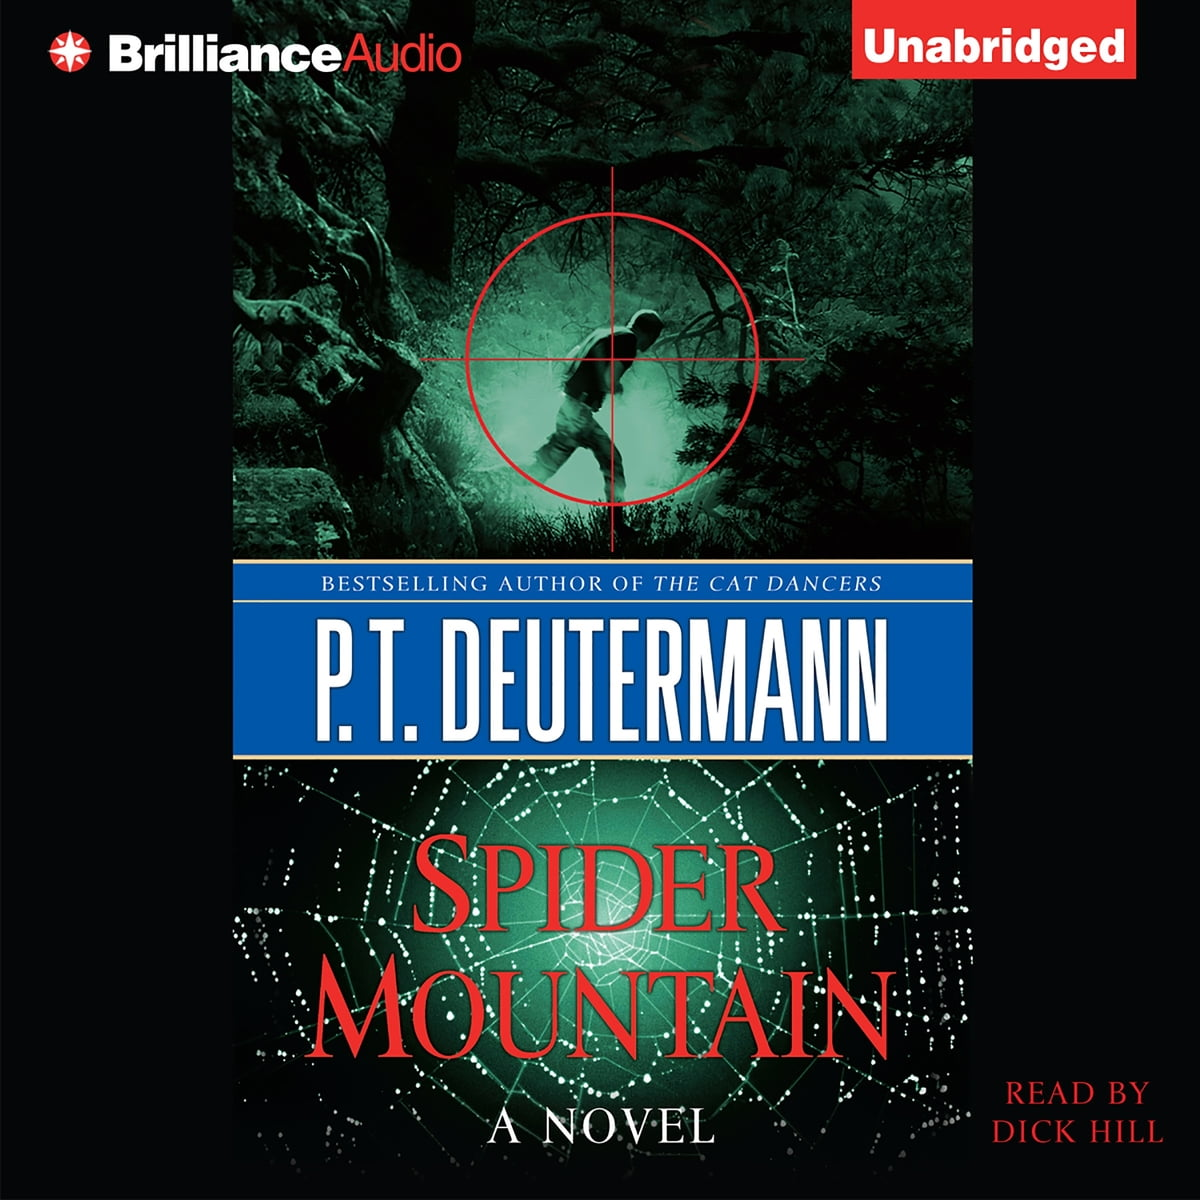 Spider Mountain Audiobook by P. T. Deutermann - 9781597108645 | Rakuten Kobo